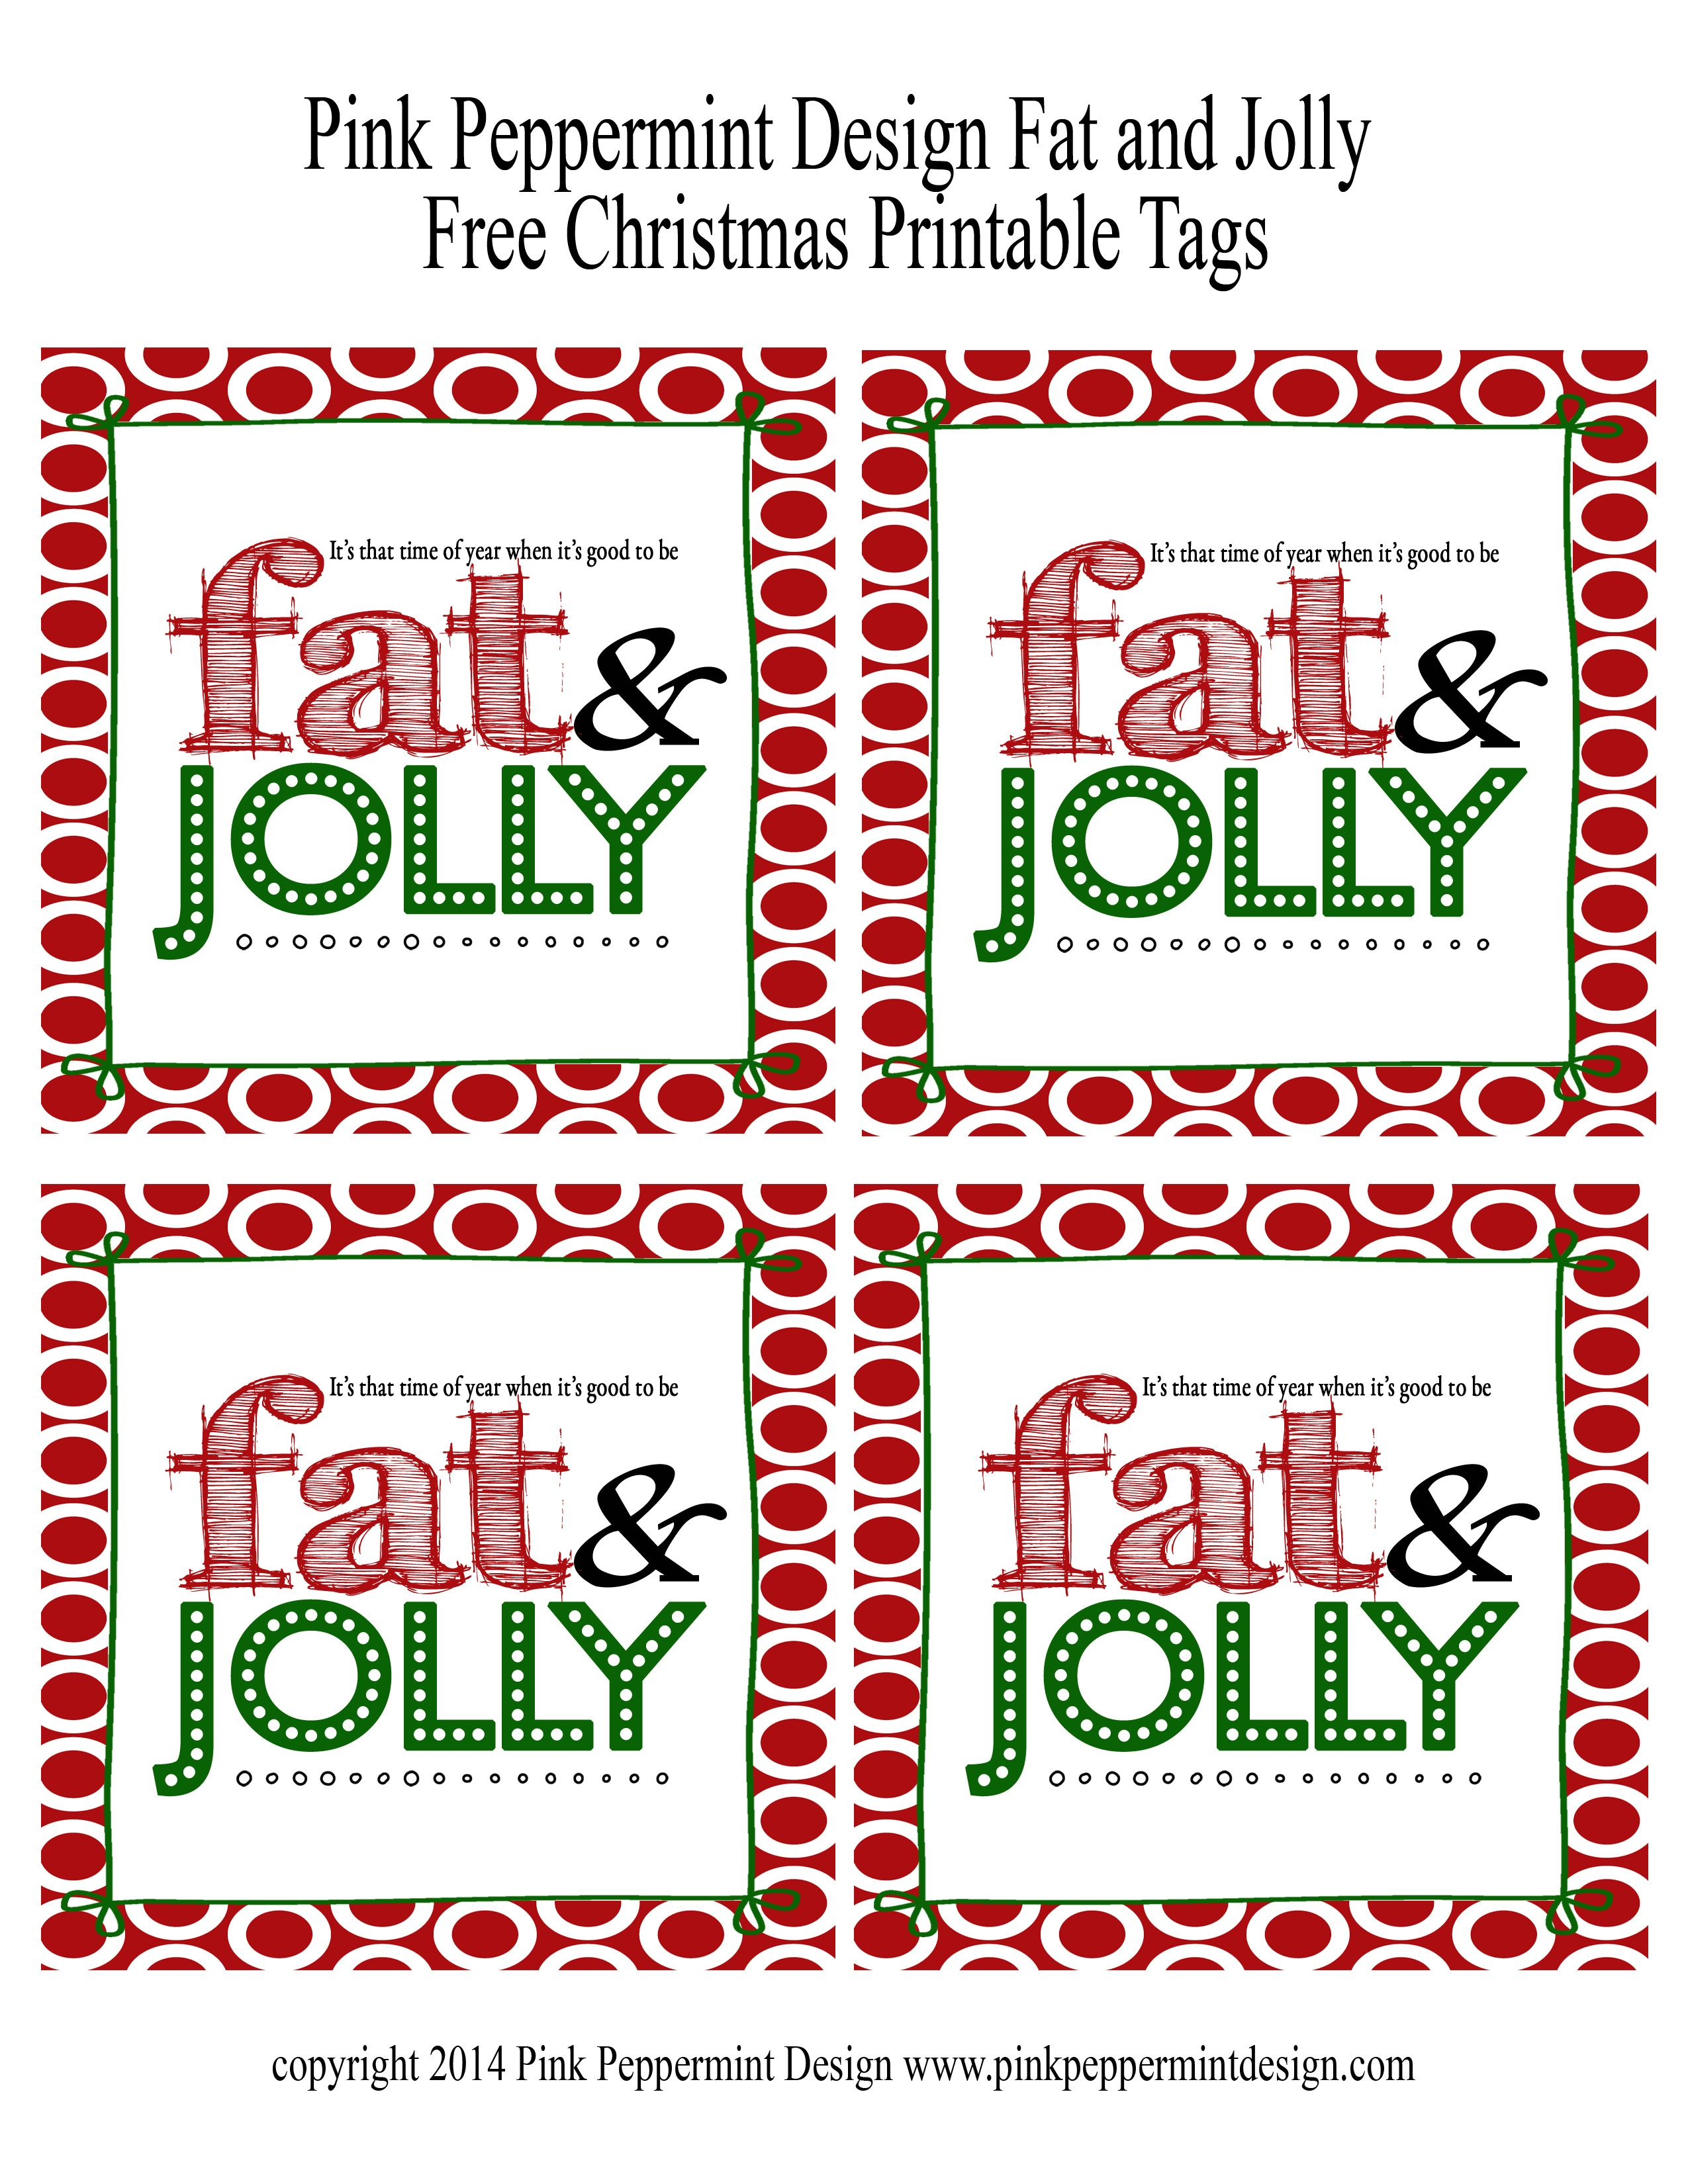 Free printable for cute Christmas treats.  Fat and Jolly.